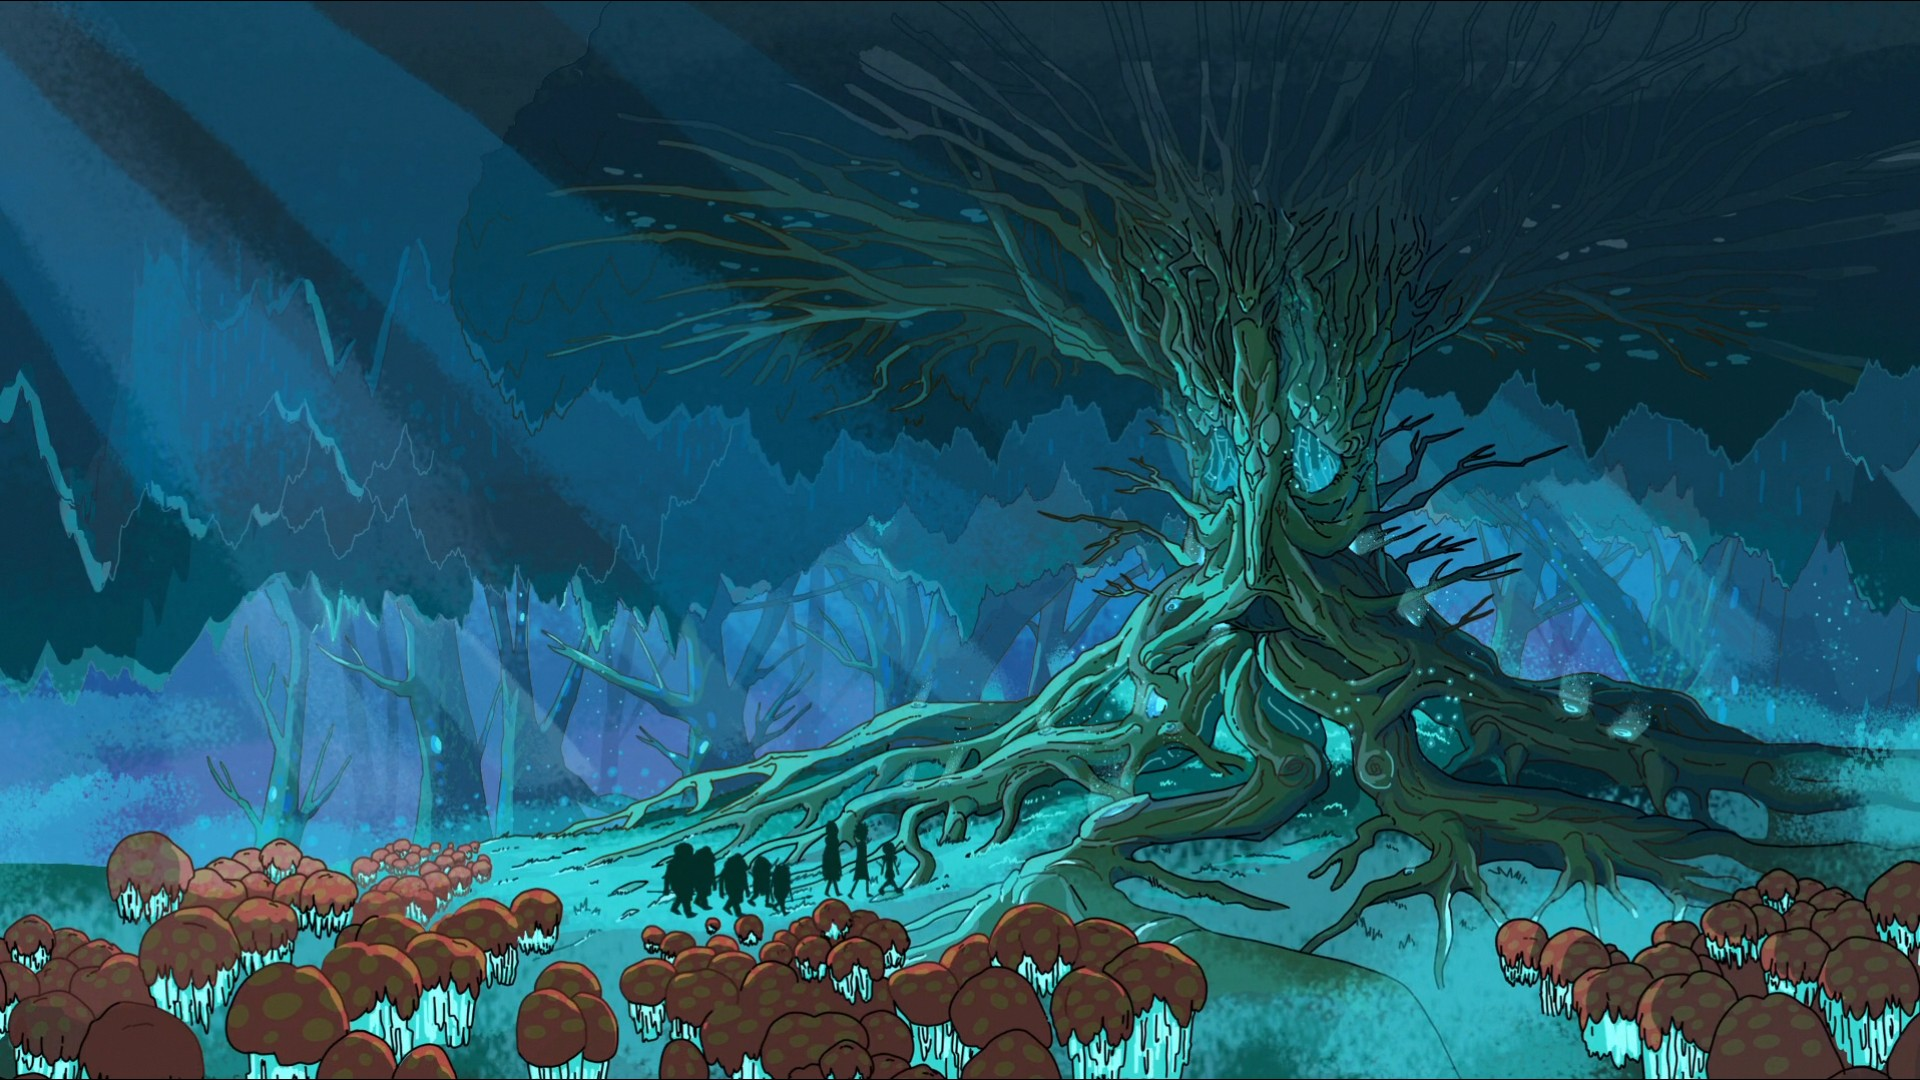 Rick and Morty wallpaper ·① Download free HD wallpapers of ...